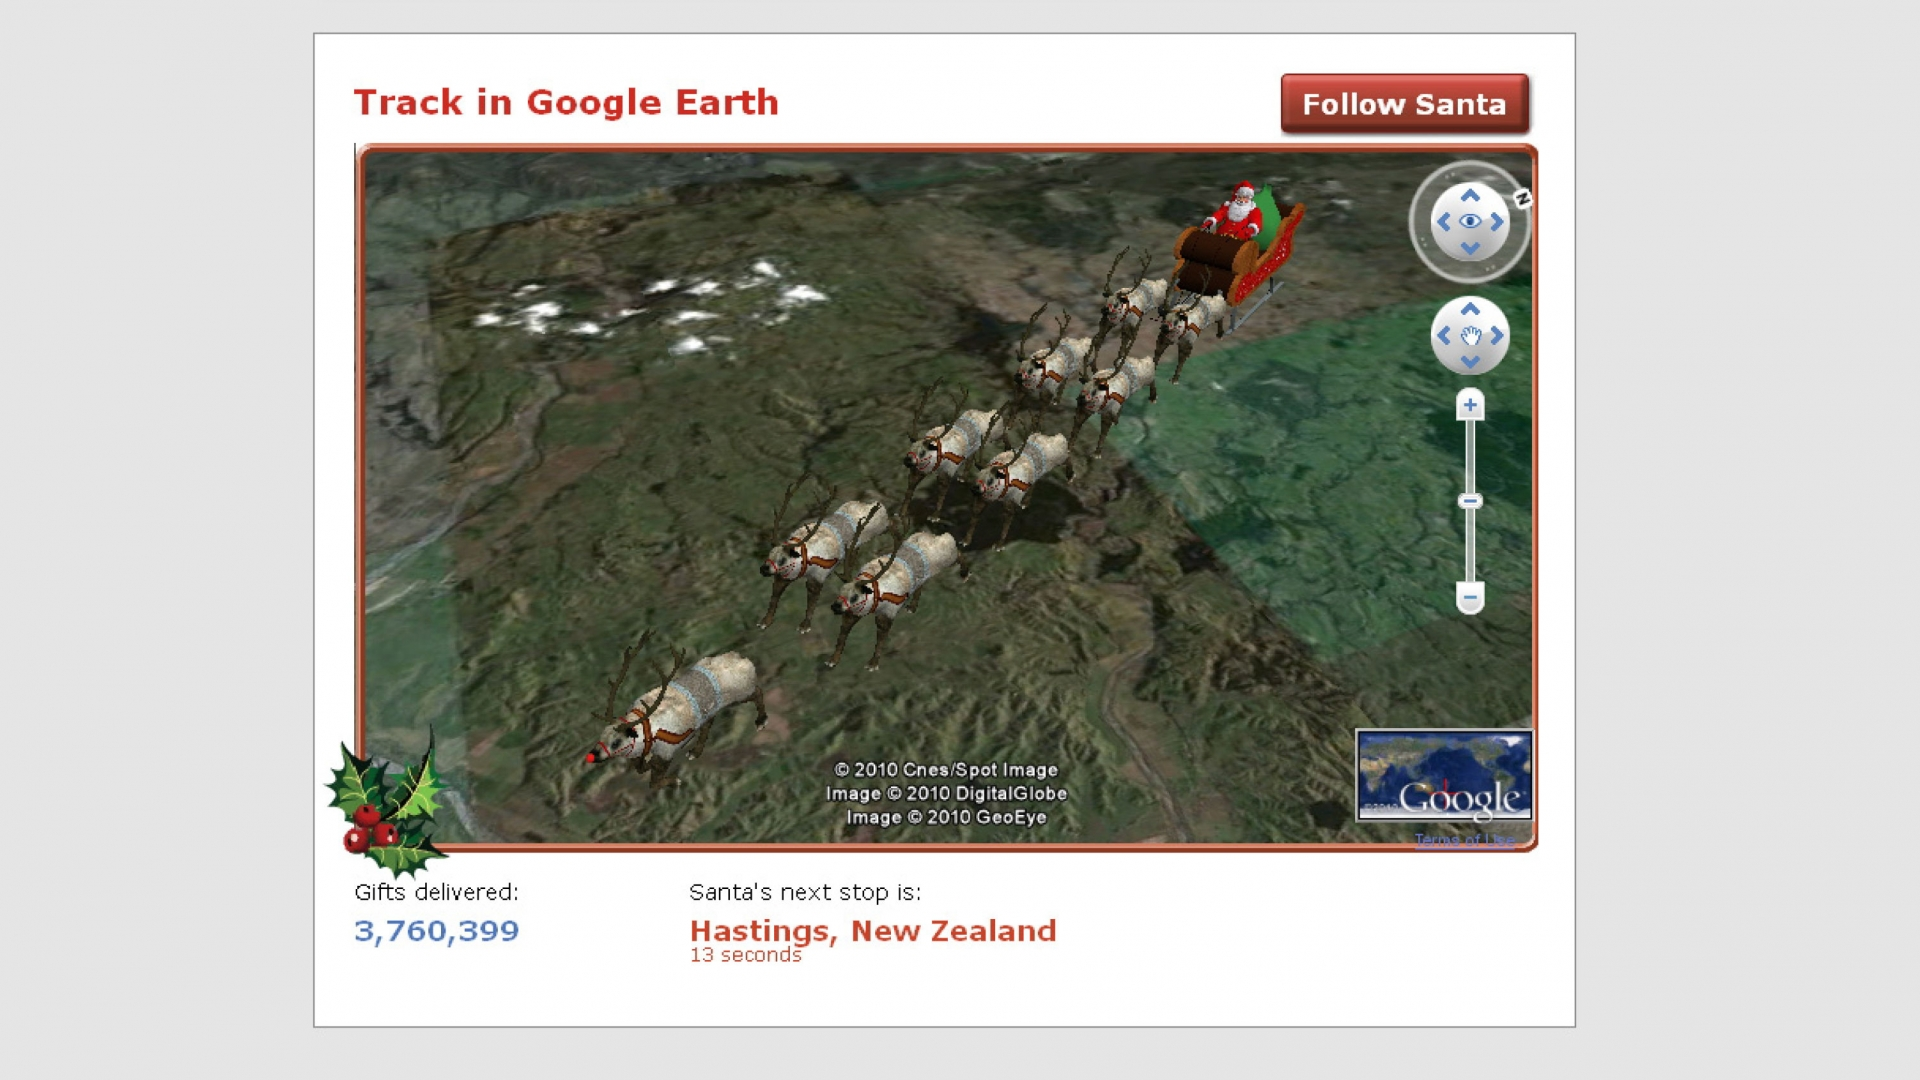 The NORAD Google Earth Santa Tracker where children are able to track Santa Claus as he travels the globe delivering presents. (Credit: REX/Shutterstock)